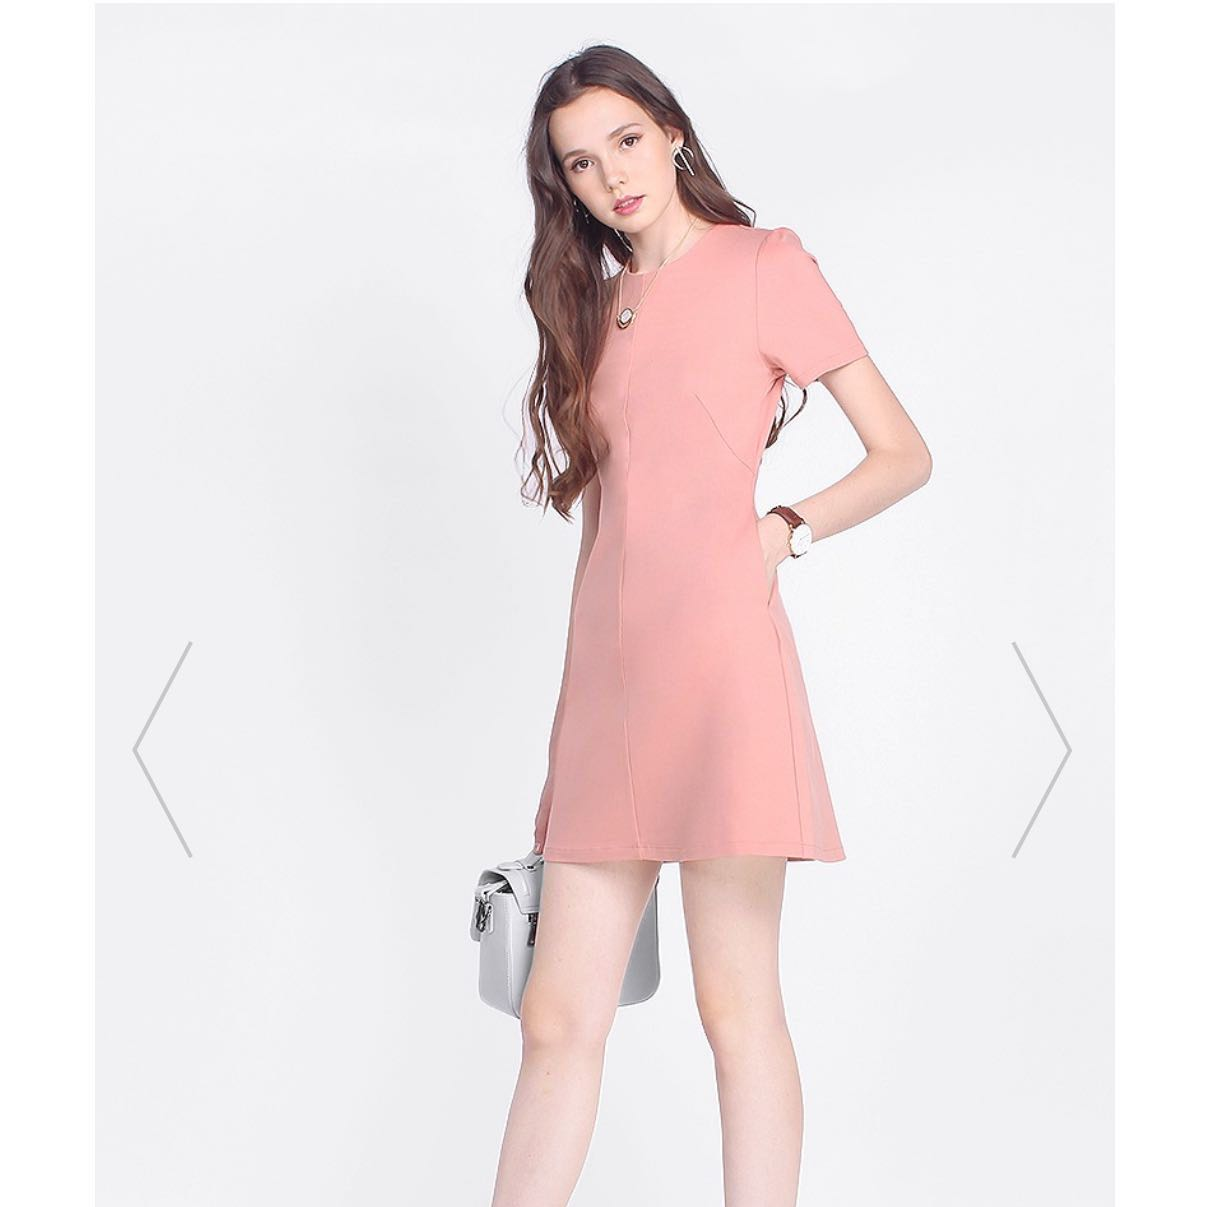 e7252486d3f0 Fayth Chenery work dress (XS) in blush nude, Women's Fashion ...